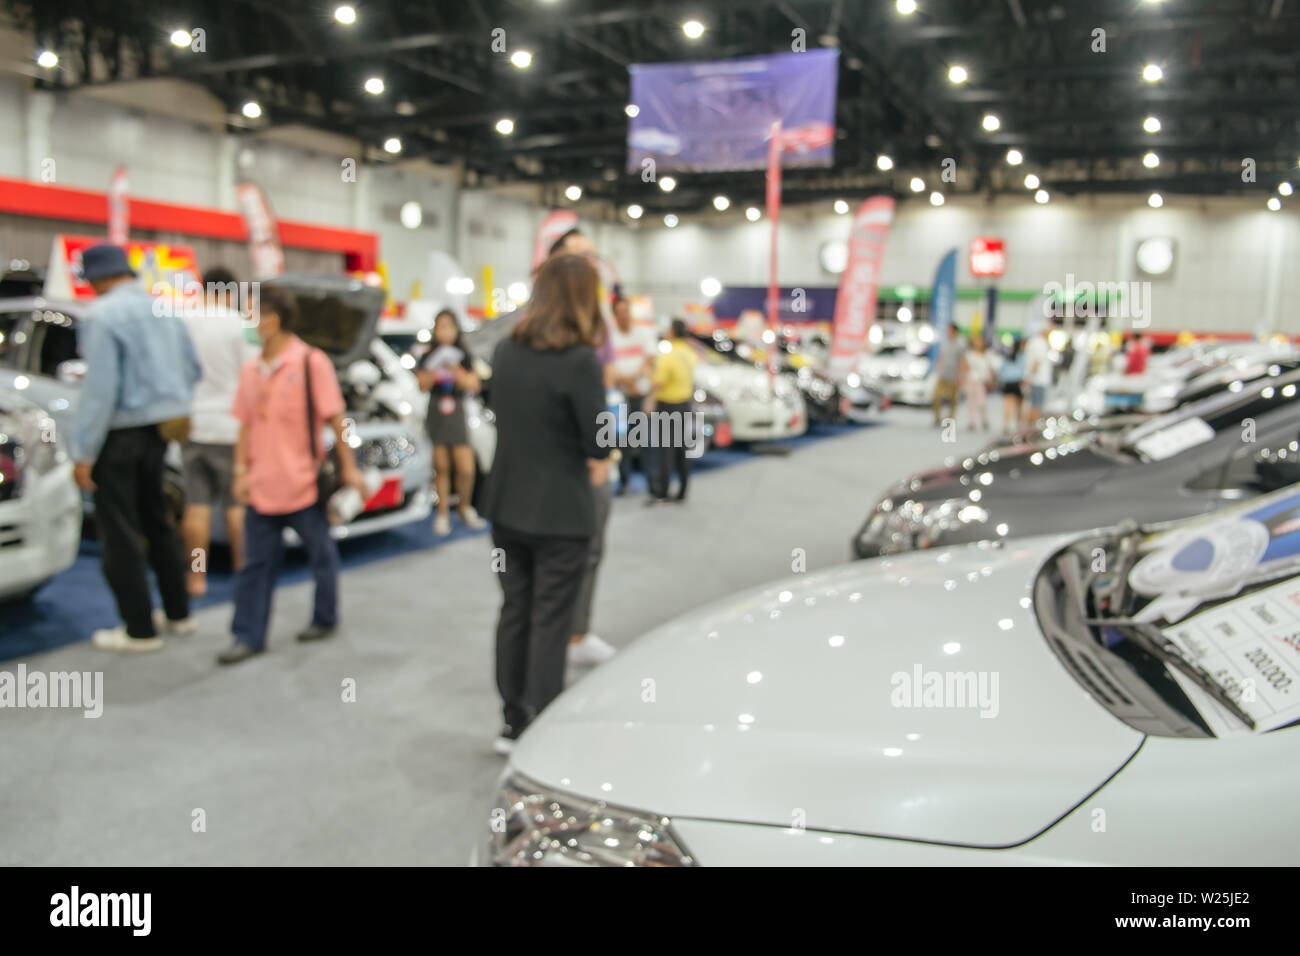 Abstract blurred defocused background of people evaluate and looking for new cars in automobile business commercial event exhibition hall, Thailand. - Stock Image